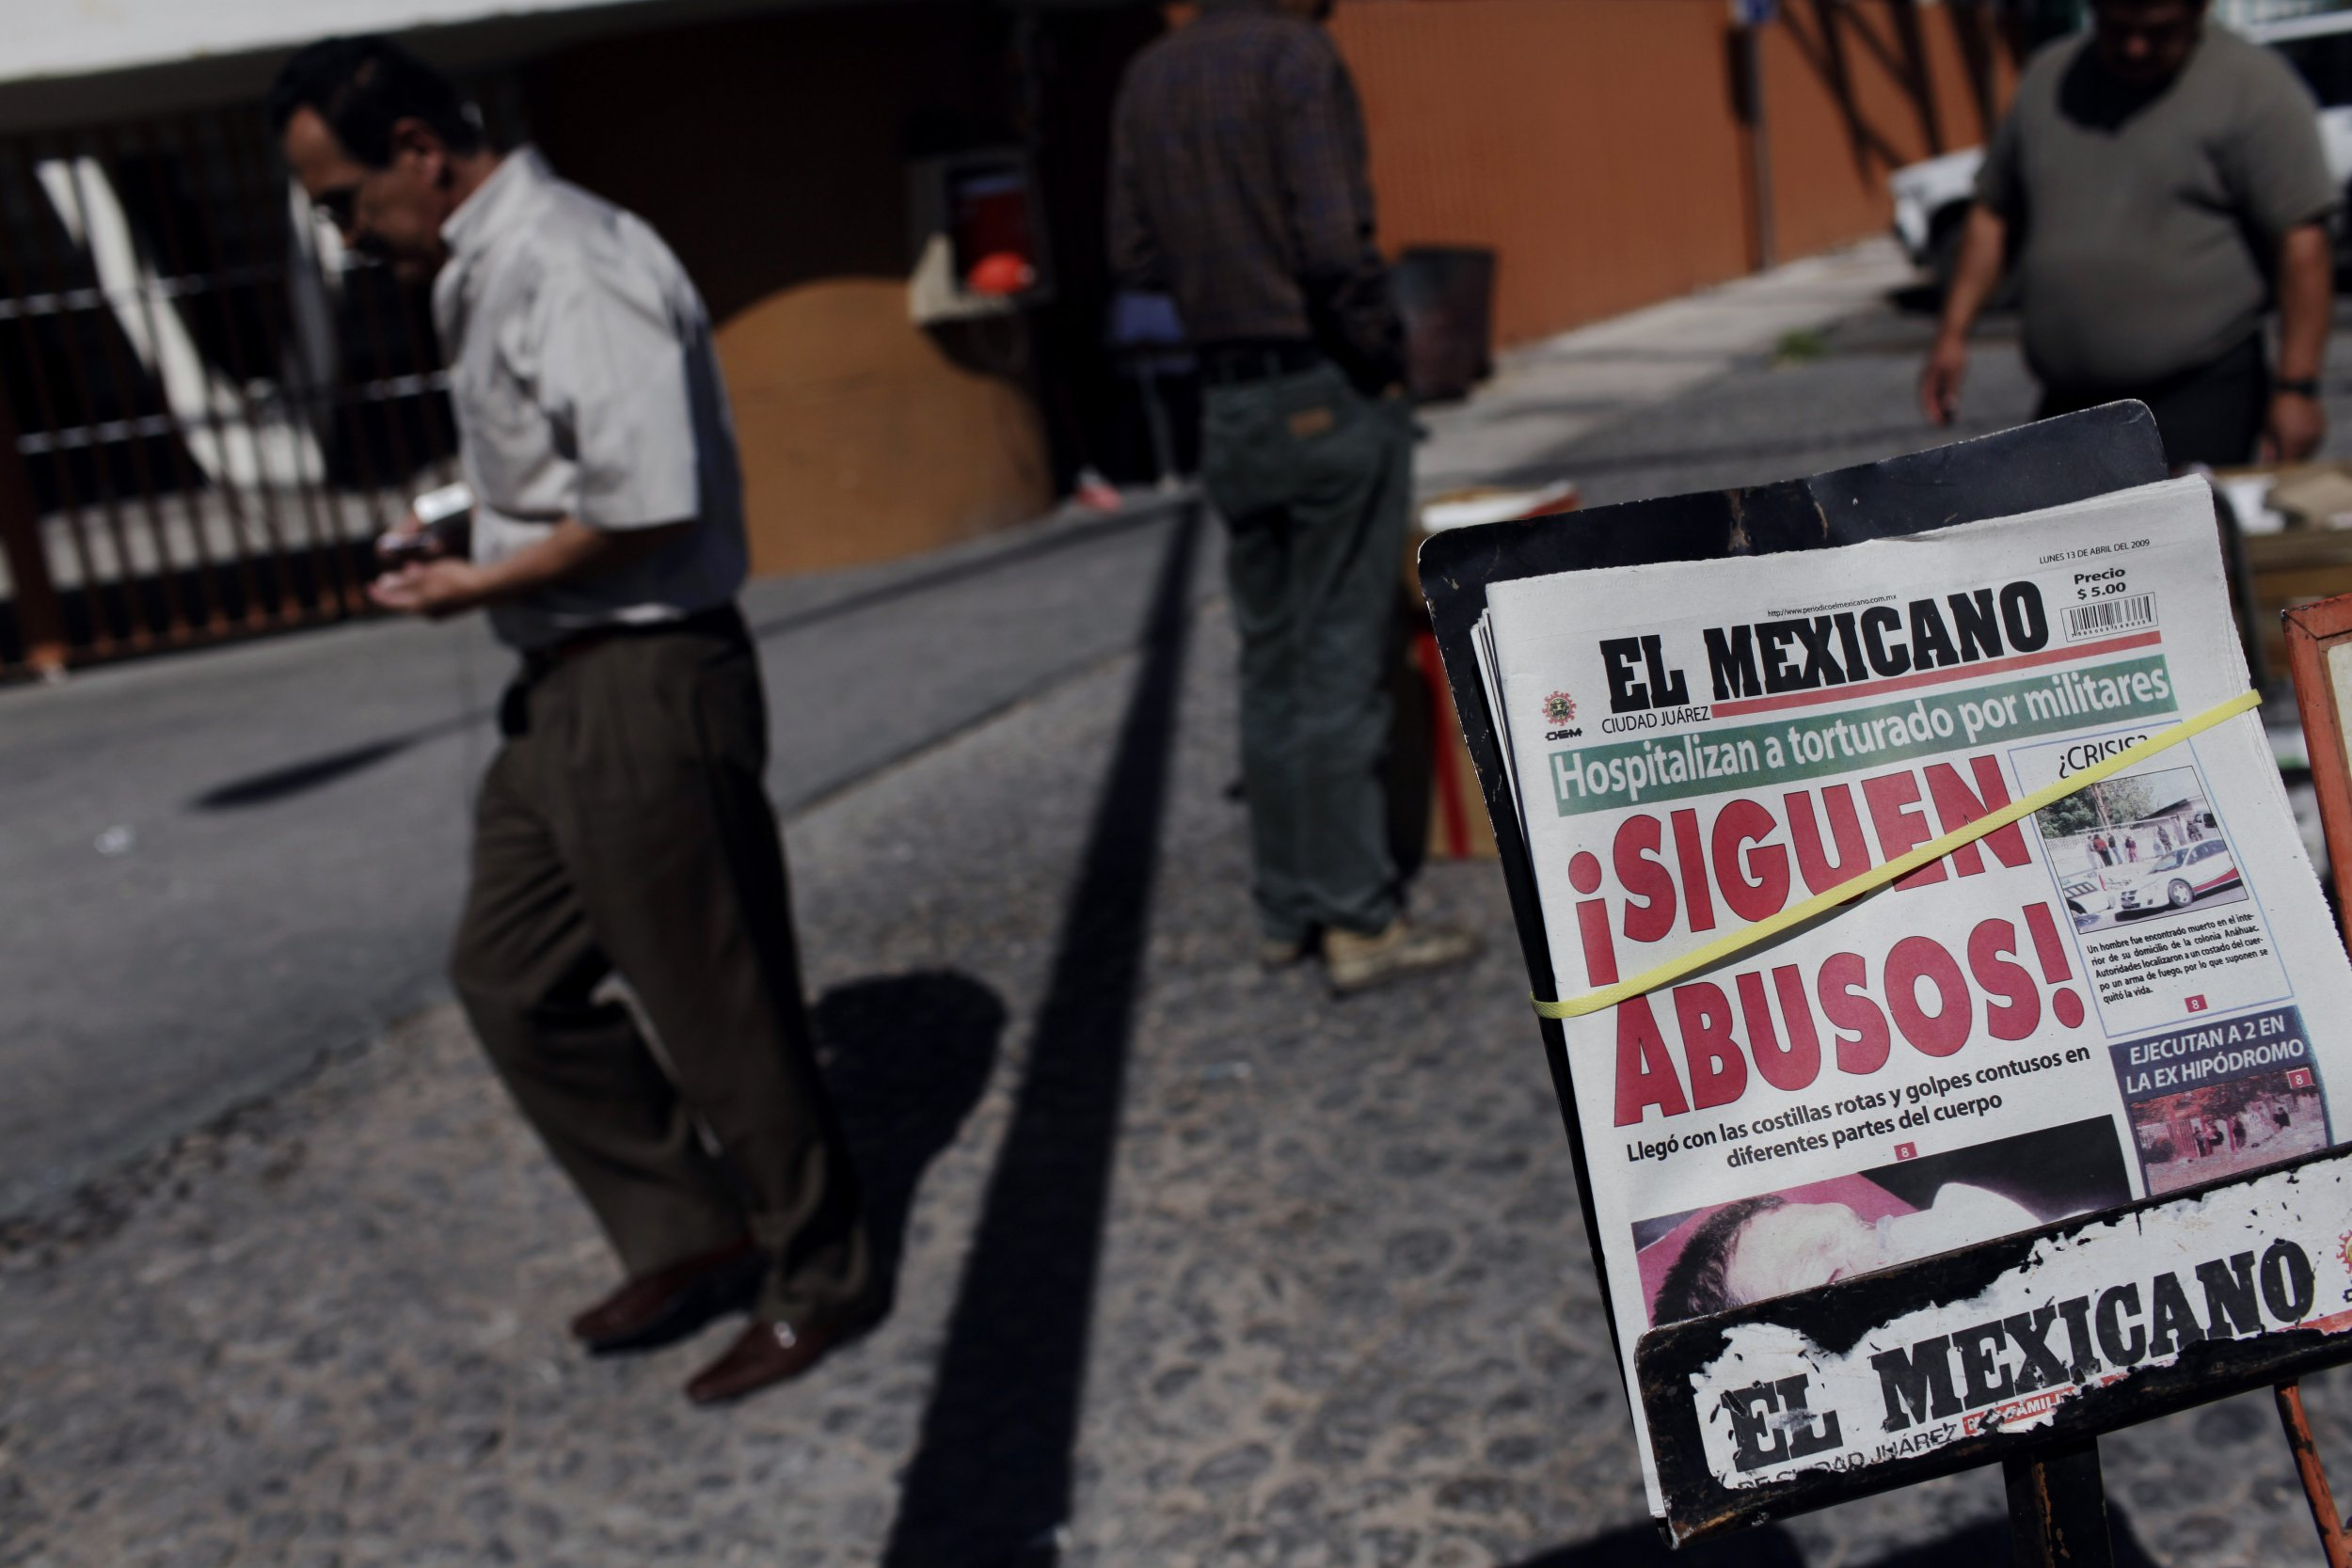 Mexico drug cartels and journalism